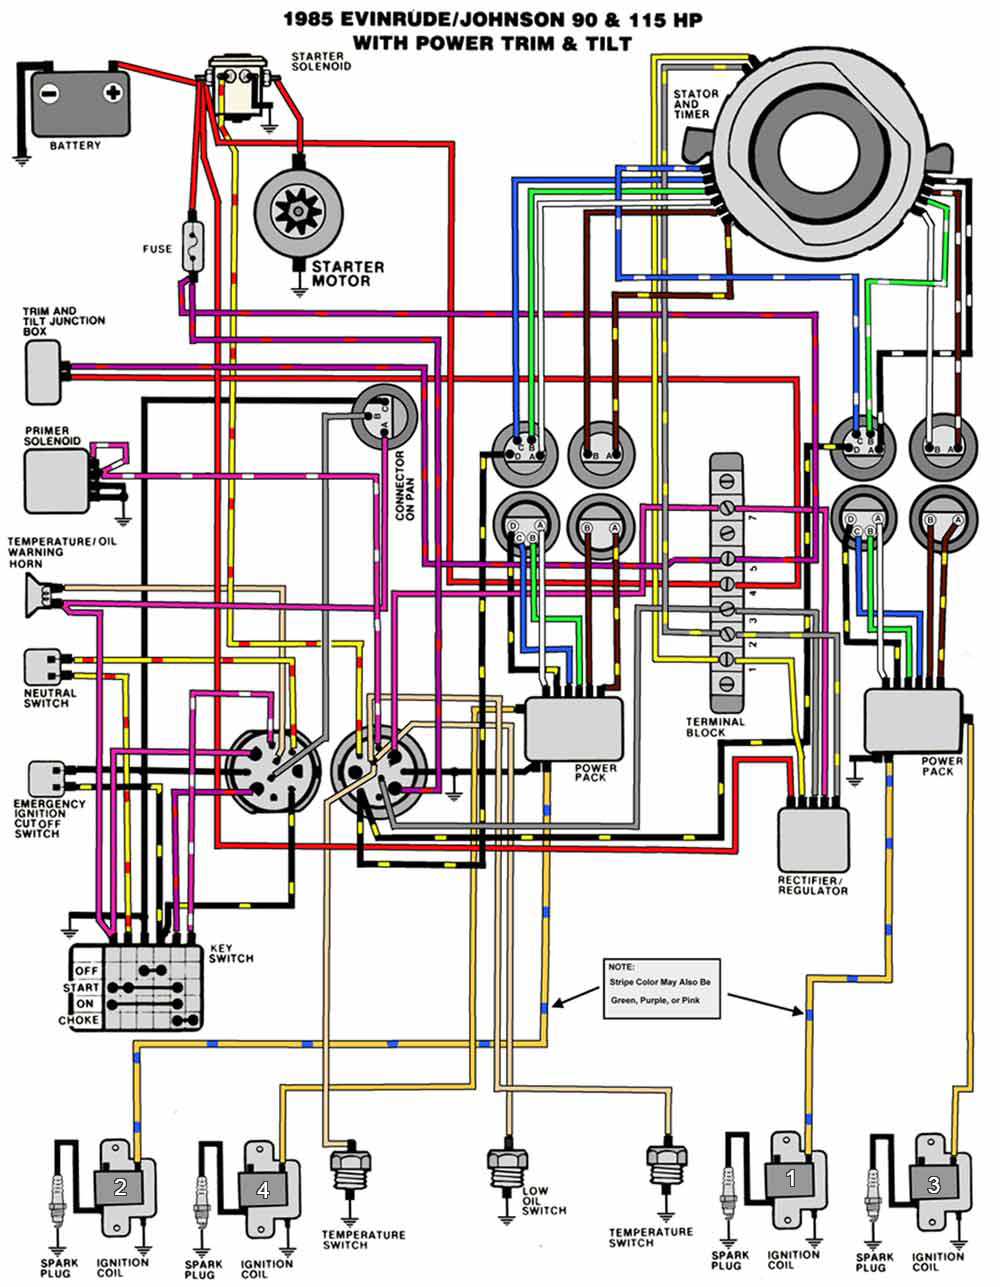 1985_90_115TnT 1992 evinrude wiring diagram 1992 wiring diagrams instruction OMC Inboard Outboard Wiring Diagrams at edmiracle.co